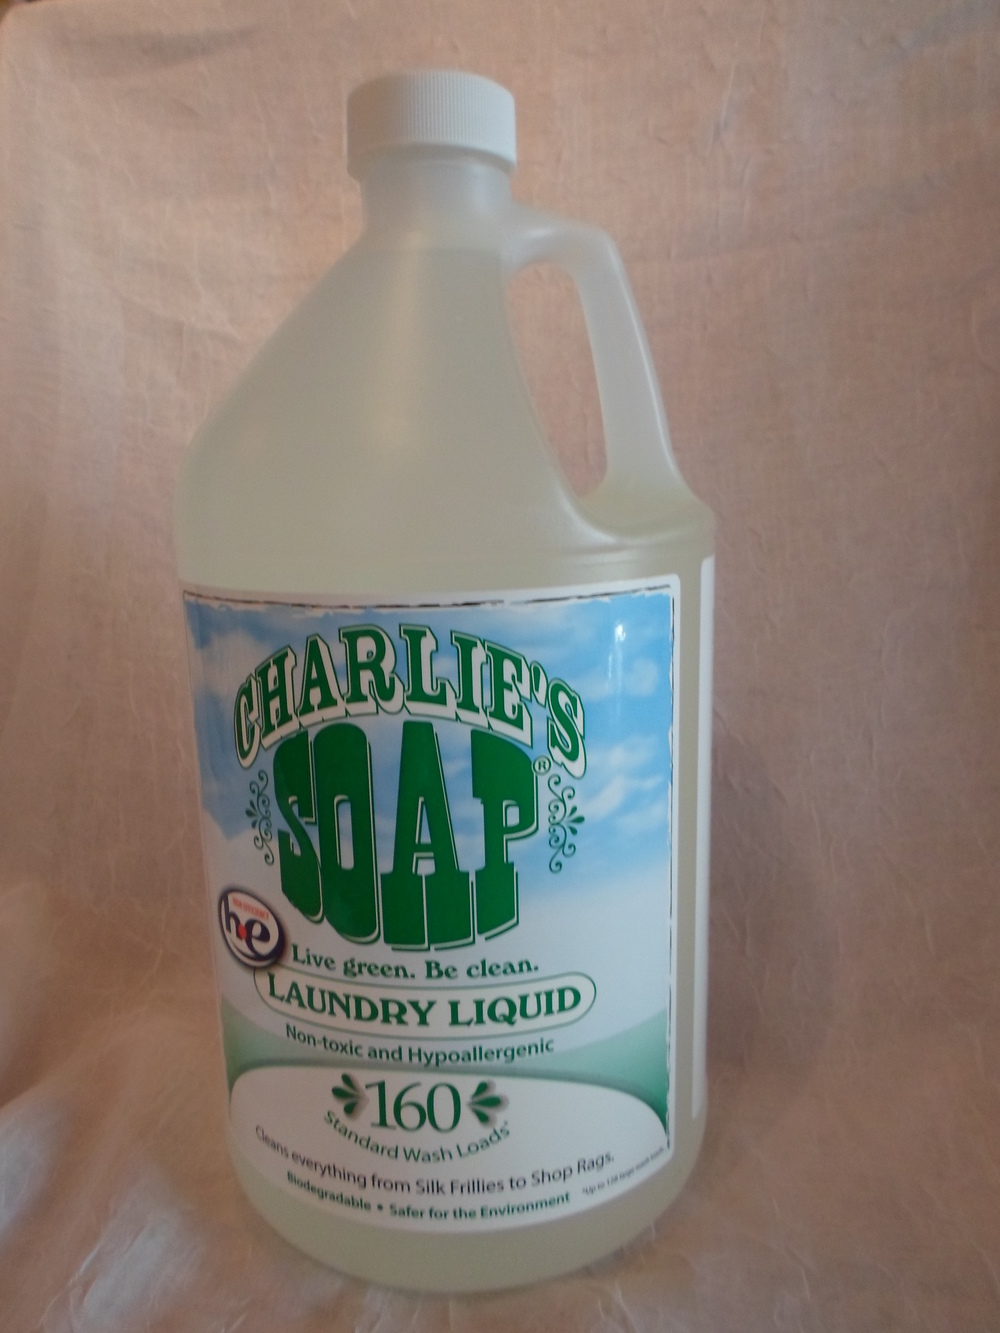 Charlie's Laundry Detergent - 1 gallon $27.40 each Wants 3  - 1  PURCHASED